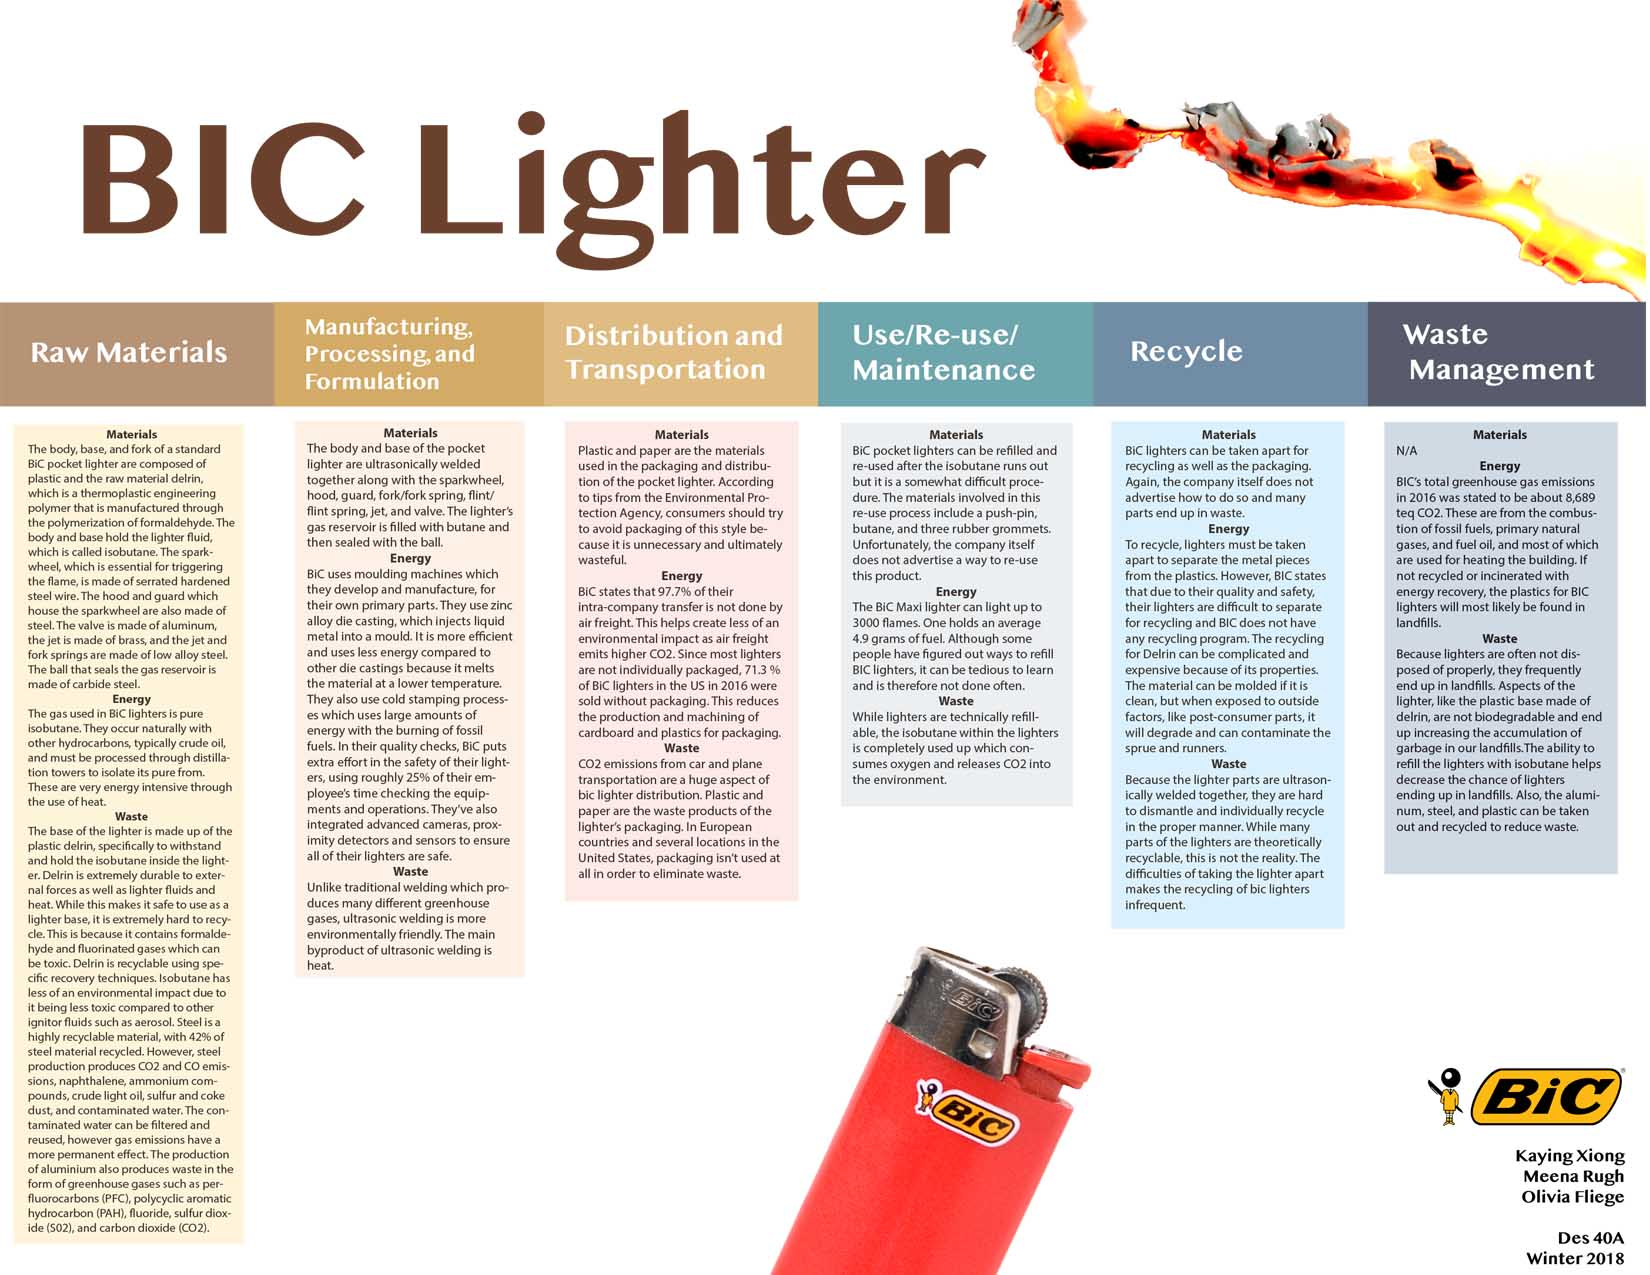 """BIC Lighter 2008-12-31.""  Wikipedia Commons , 31 Dec. 2008, commons.wikimedia.org/wiki/File:BIC_lighter_2008-12-31.jpg.  ""Burn Paper.""  Deviantart , 1 Mar. 2012, crazzhky.deviantart.com/art/Burn-paper-288099357.  ""BIC Logo.""  1000logos , 1000logos.net/bic-logo/."